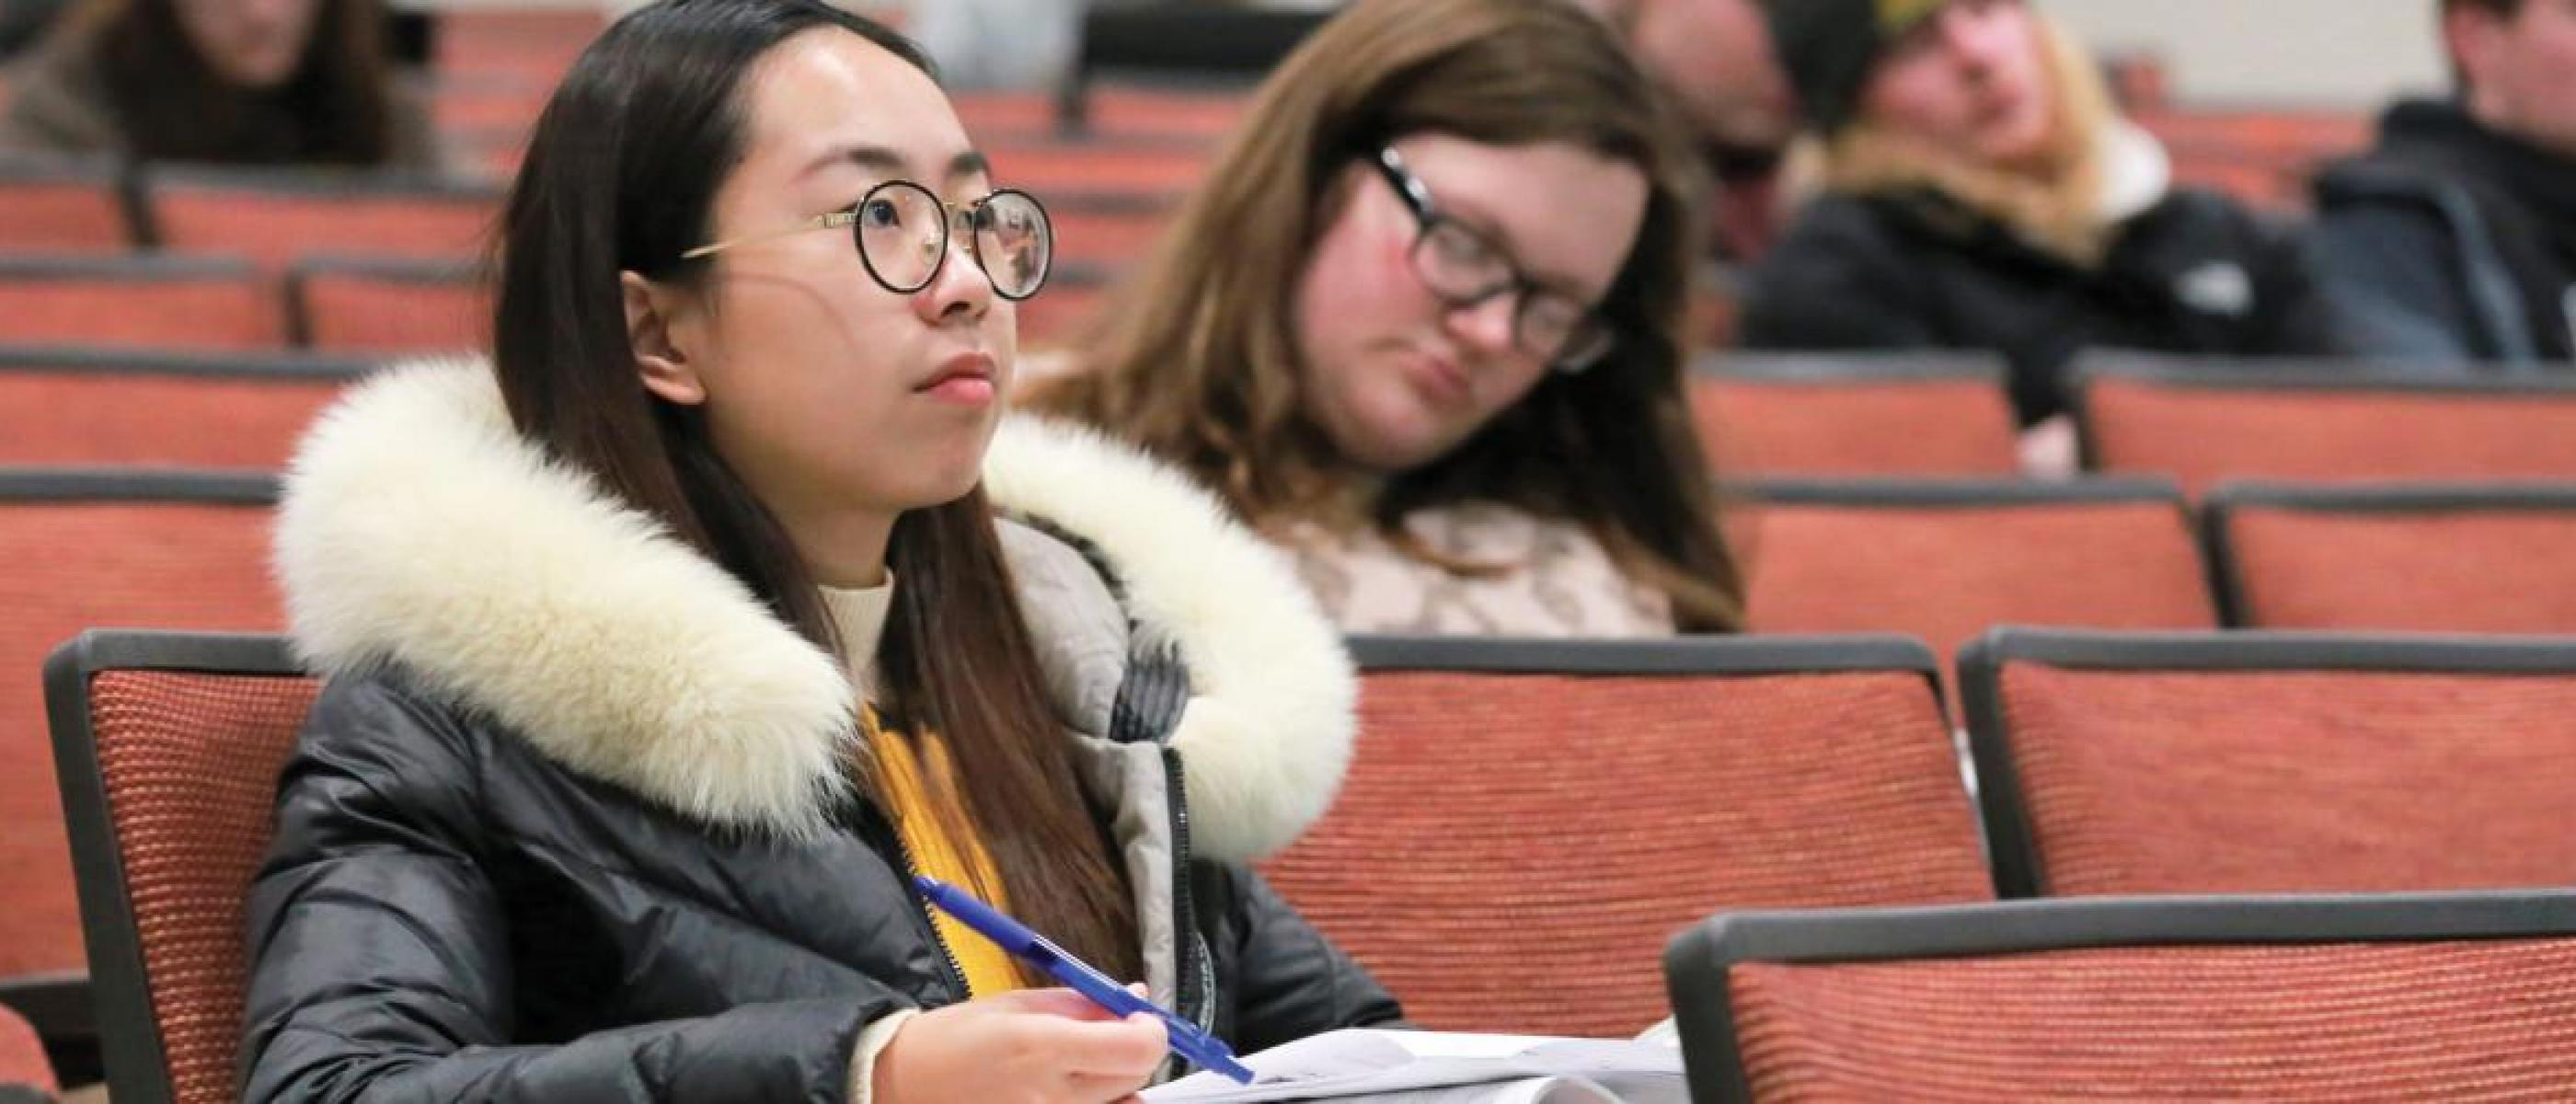 Student listening during classroom lecture